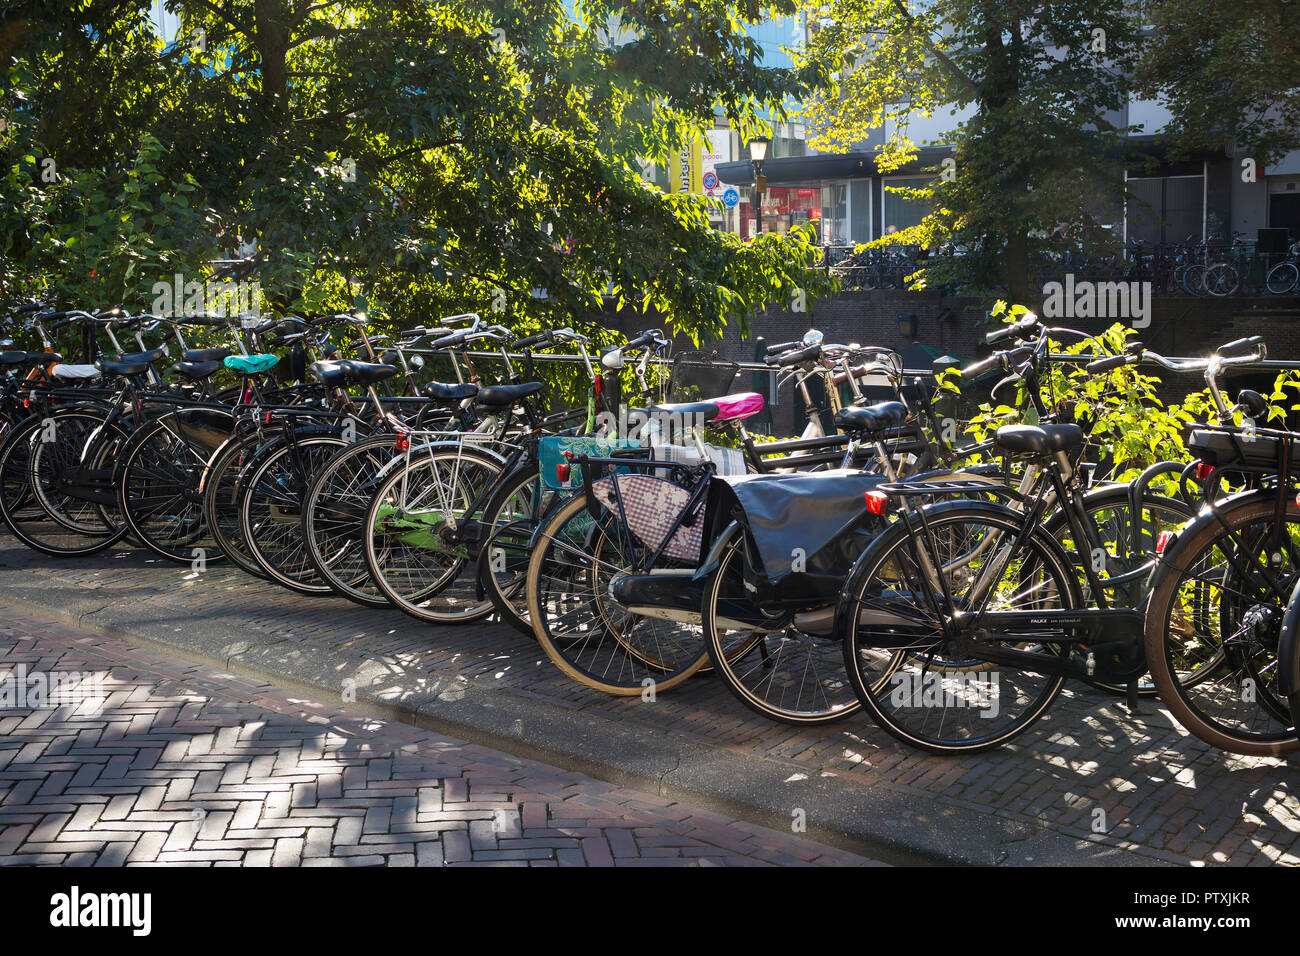 Utrecht, Netherlands - September 27, 2018: Traditional row of parked bicycles near the canal in the center of Utrecht - Stock Image